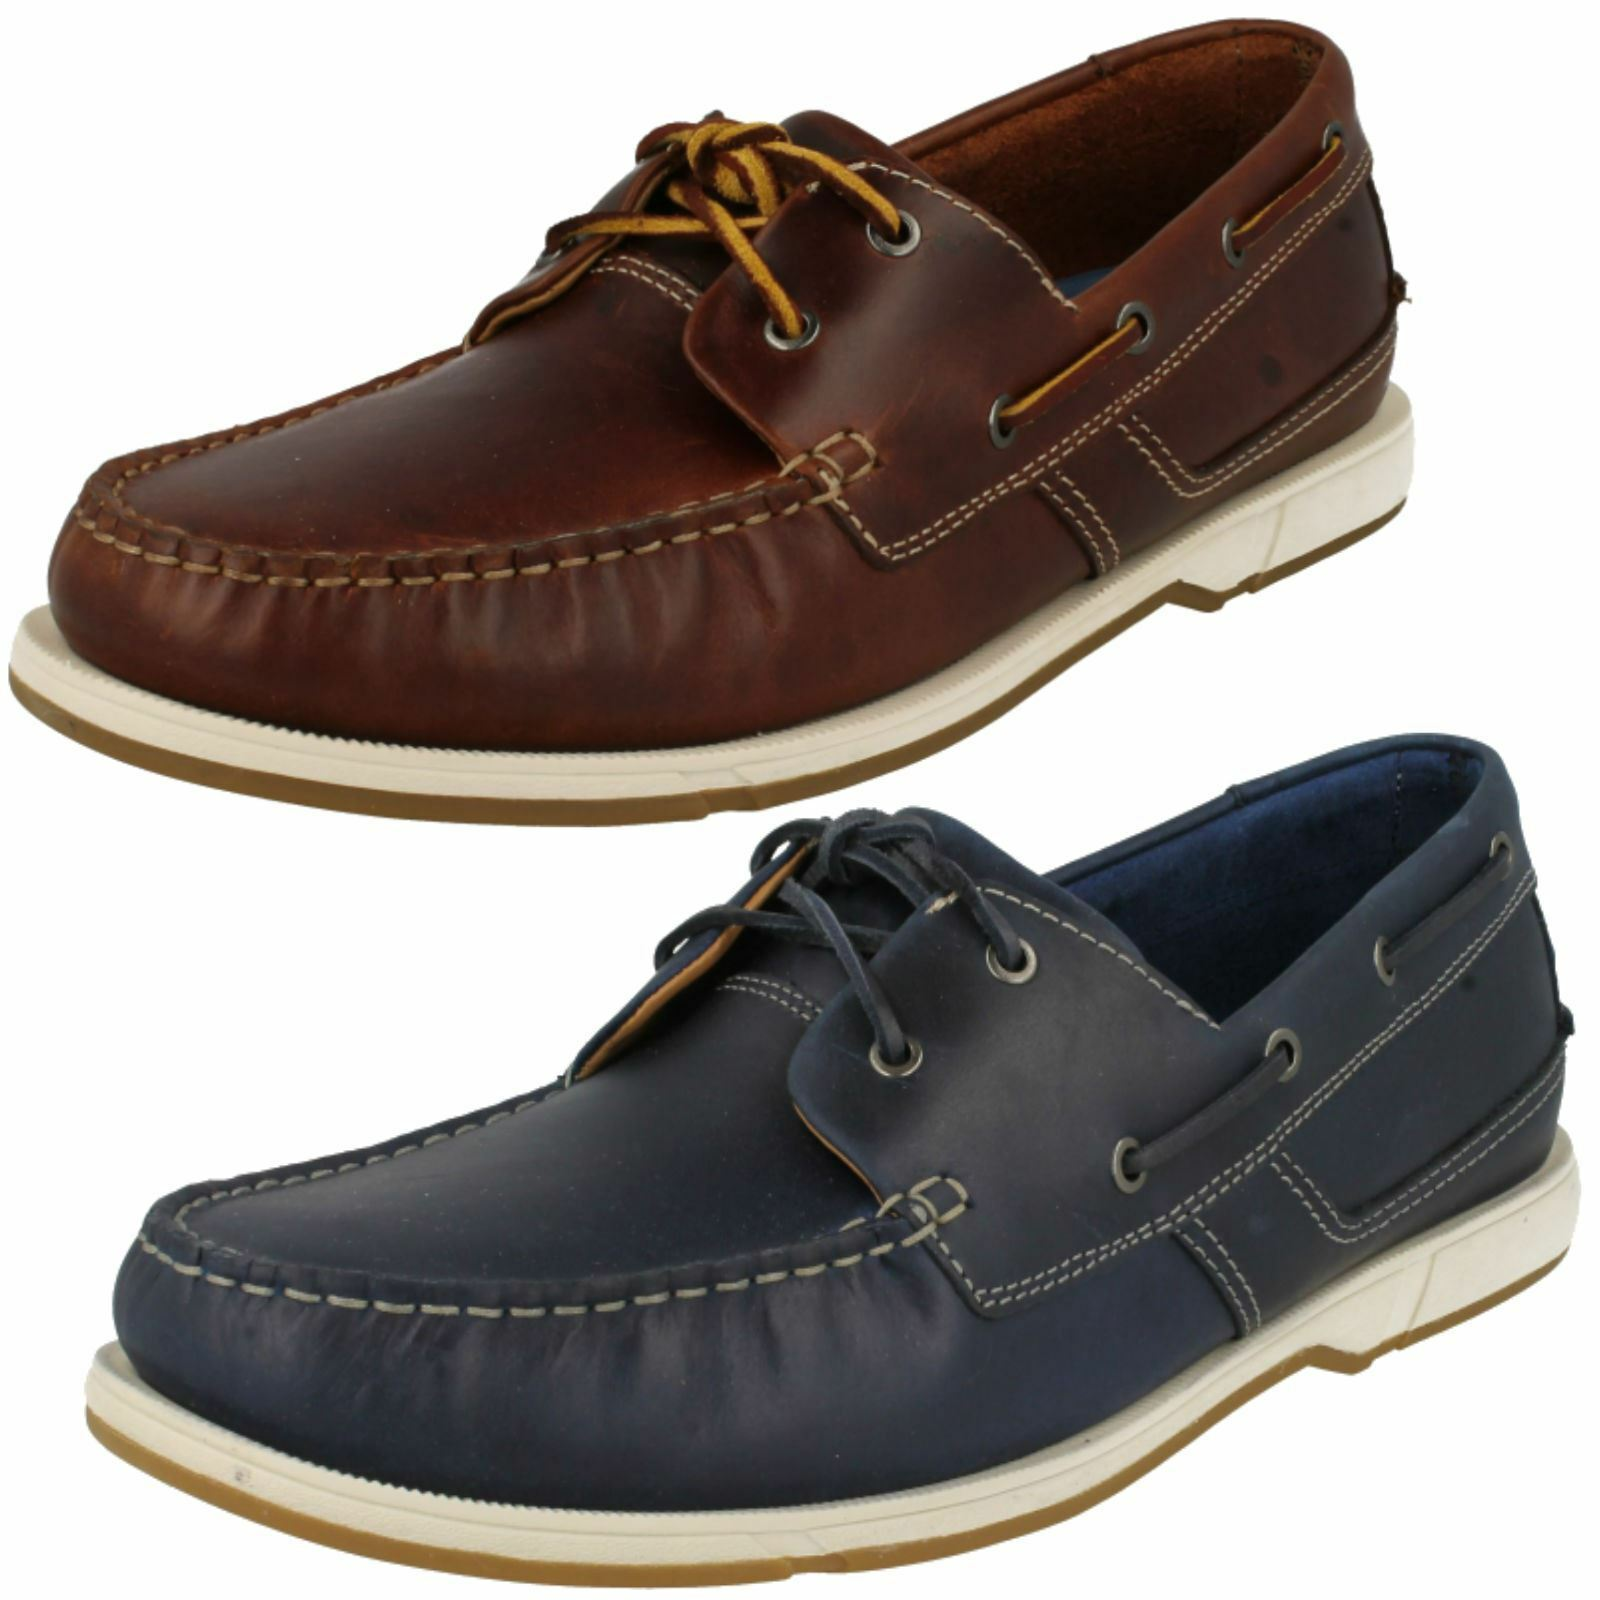 Mens Clarks Deck Style Smart Casual Lace Up Leather shoes Fulmen Row